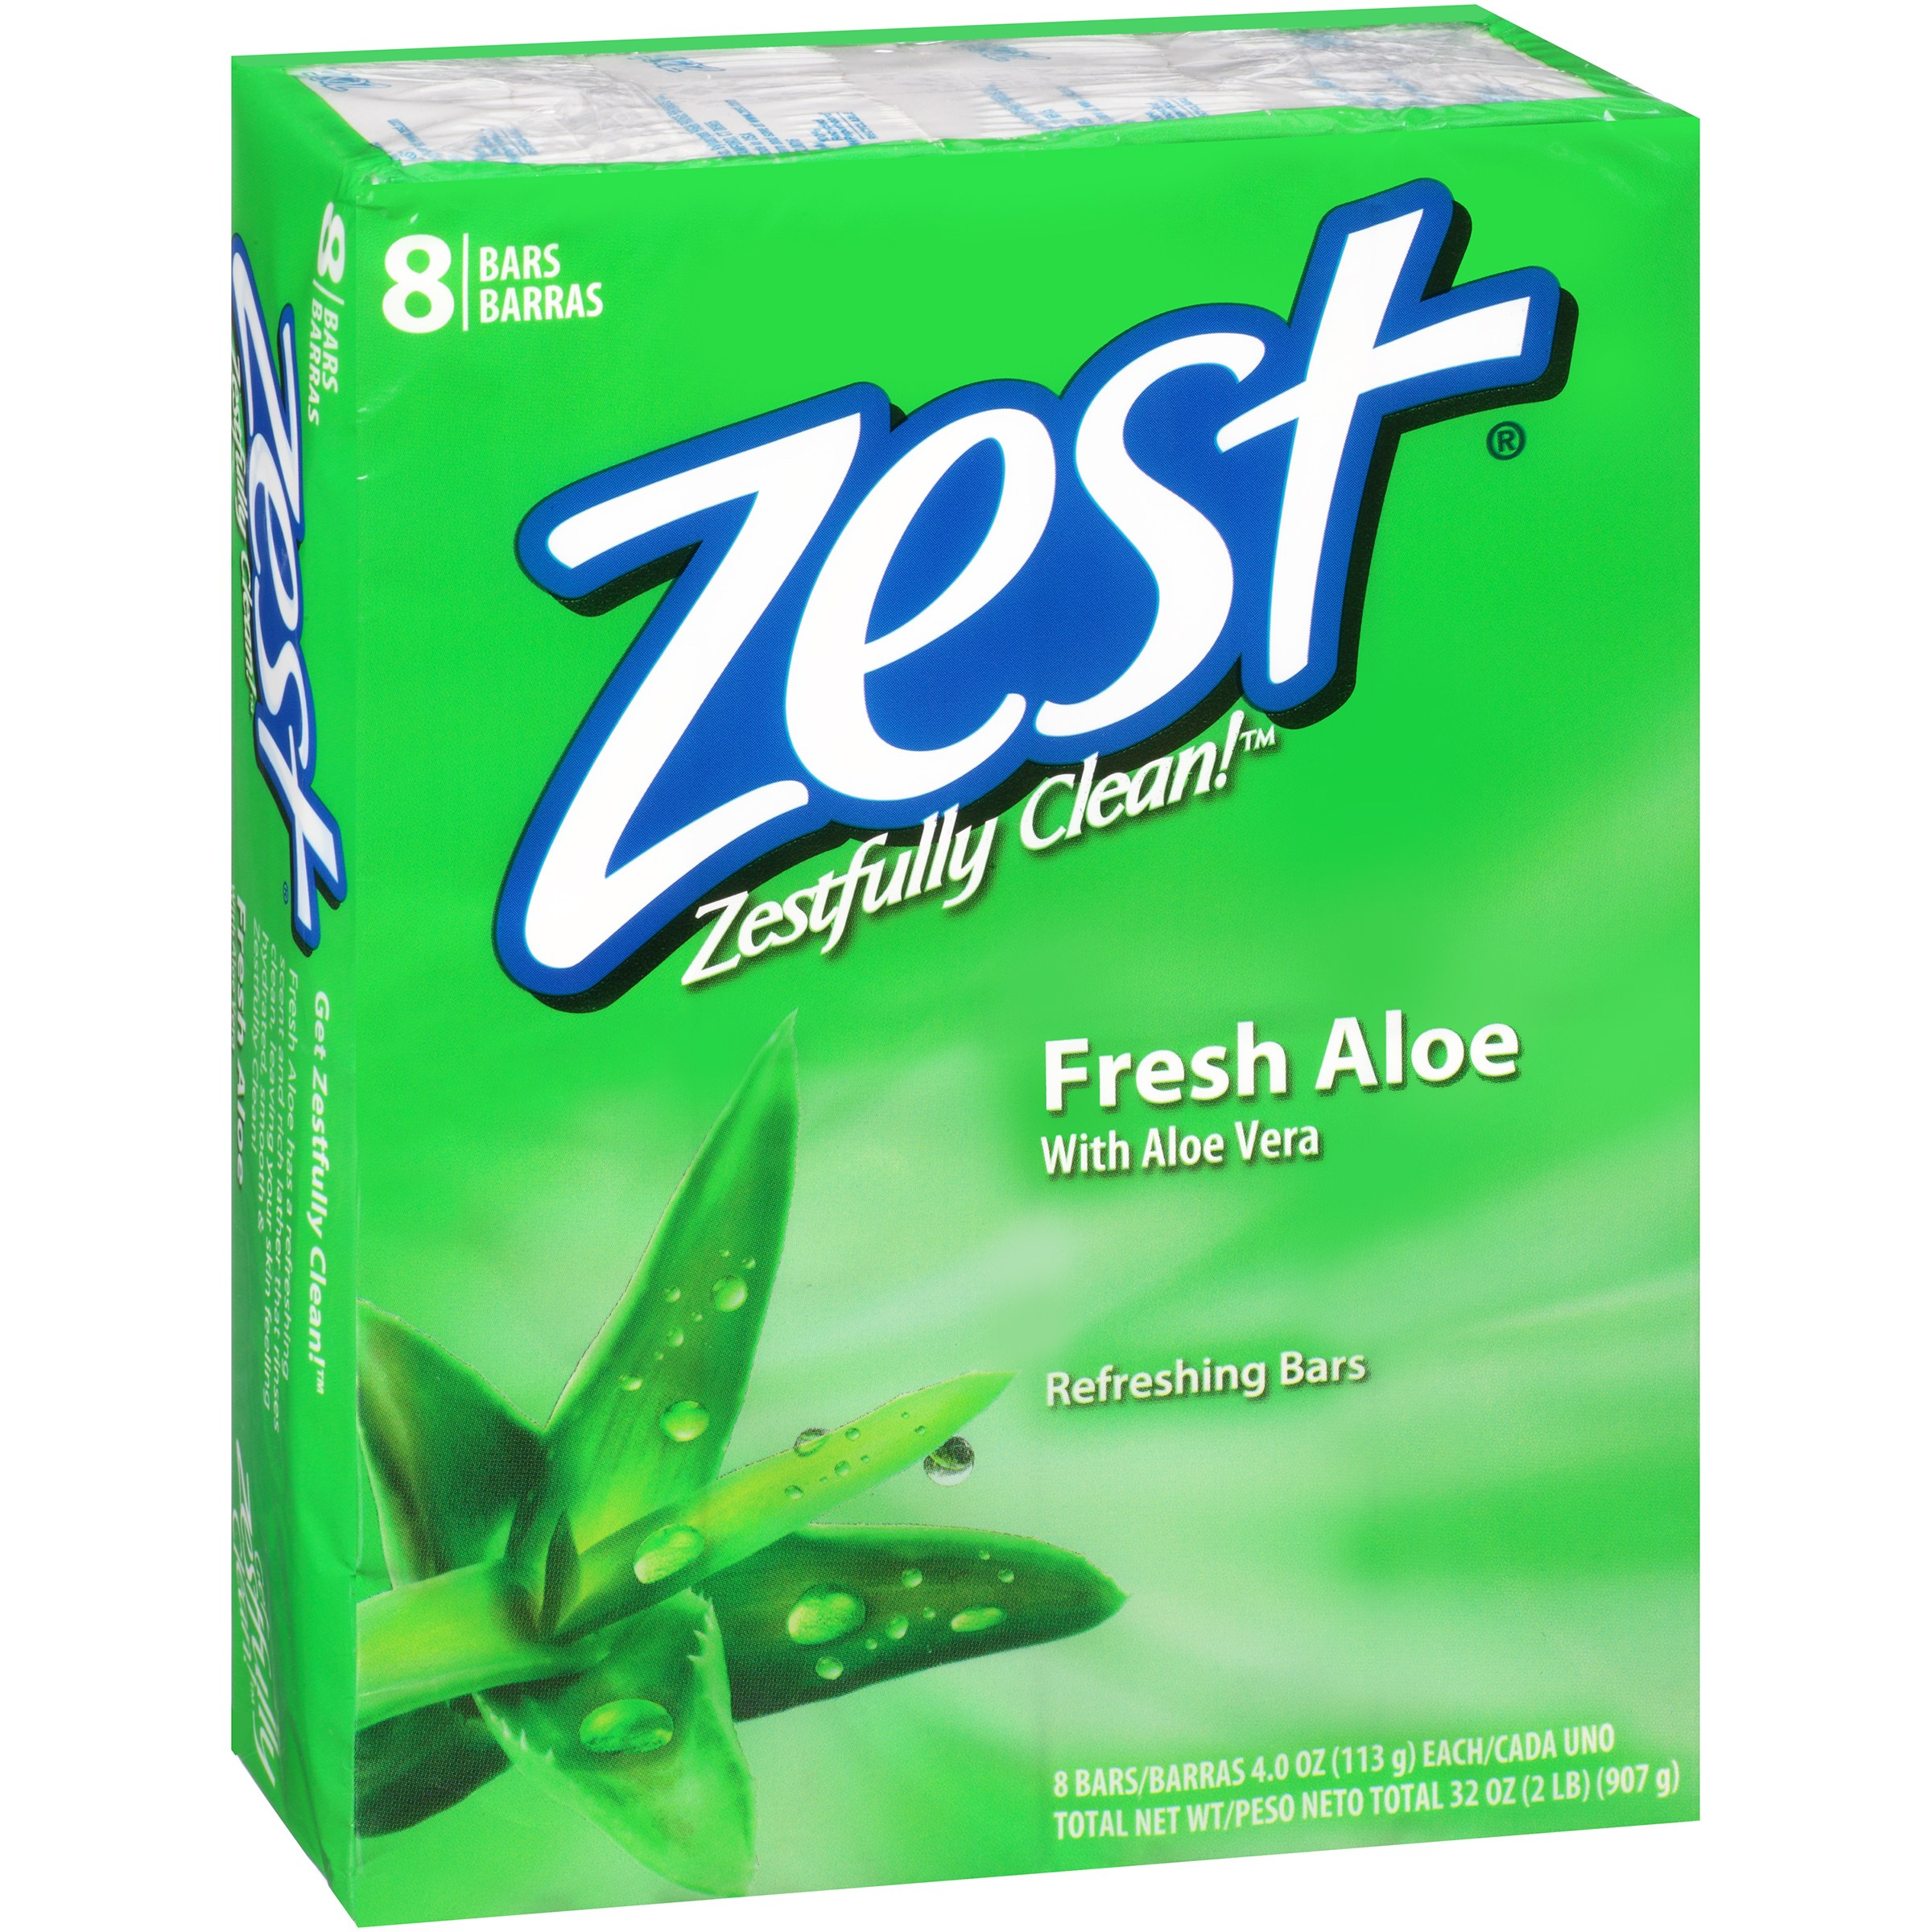 Zest Fresh Aloe Refreshing Bar Soap, 4 oz, 8 count